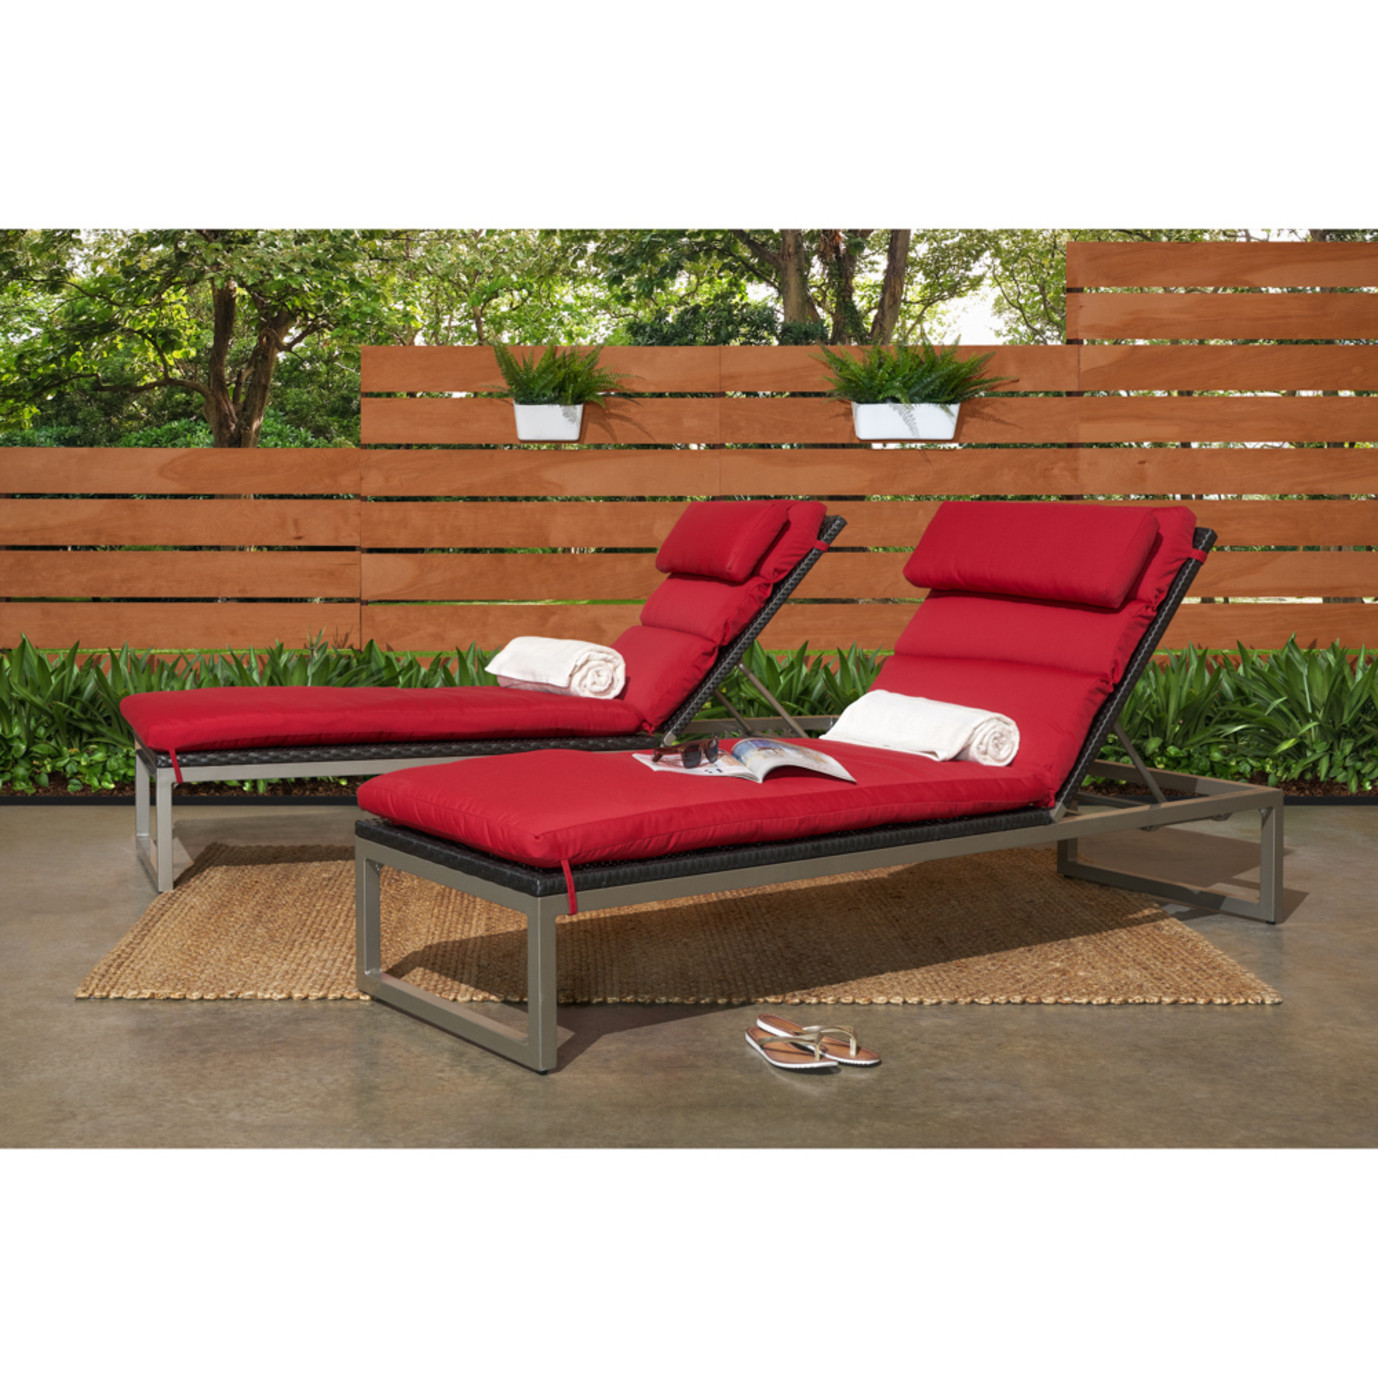 Milo™ Espresso Chaise Lounges - Sunset Red